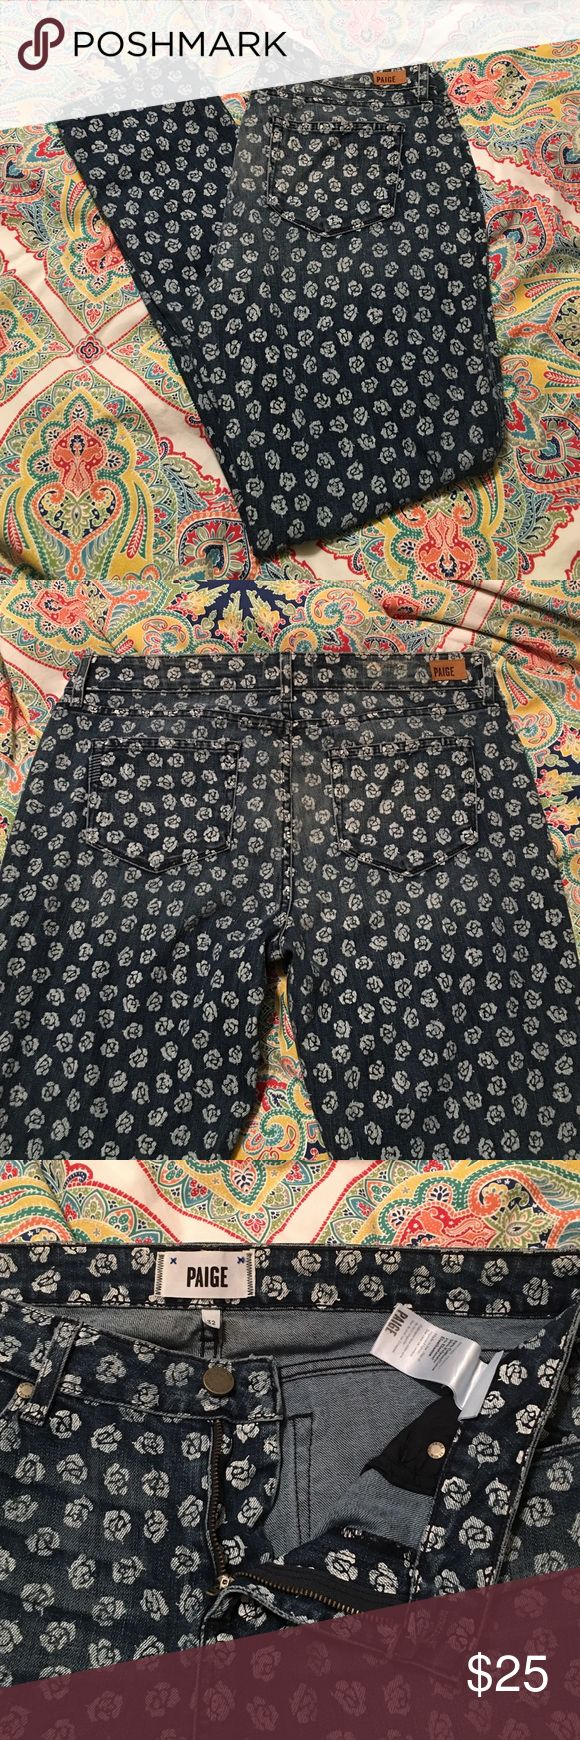 """Paige Rose Print Skinny Jeans Paige Rose Print Skinny Jeans in size 32. Style """"Skyline Ankle Peg"""". New, never worn. Button and zip closure. Paige Jeans Jeans Skinny"""